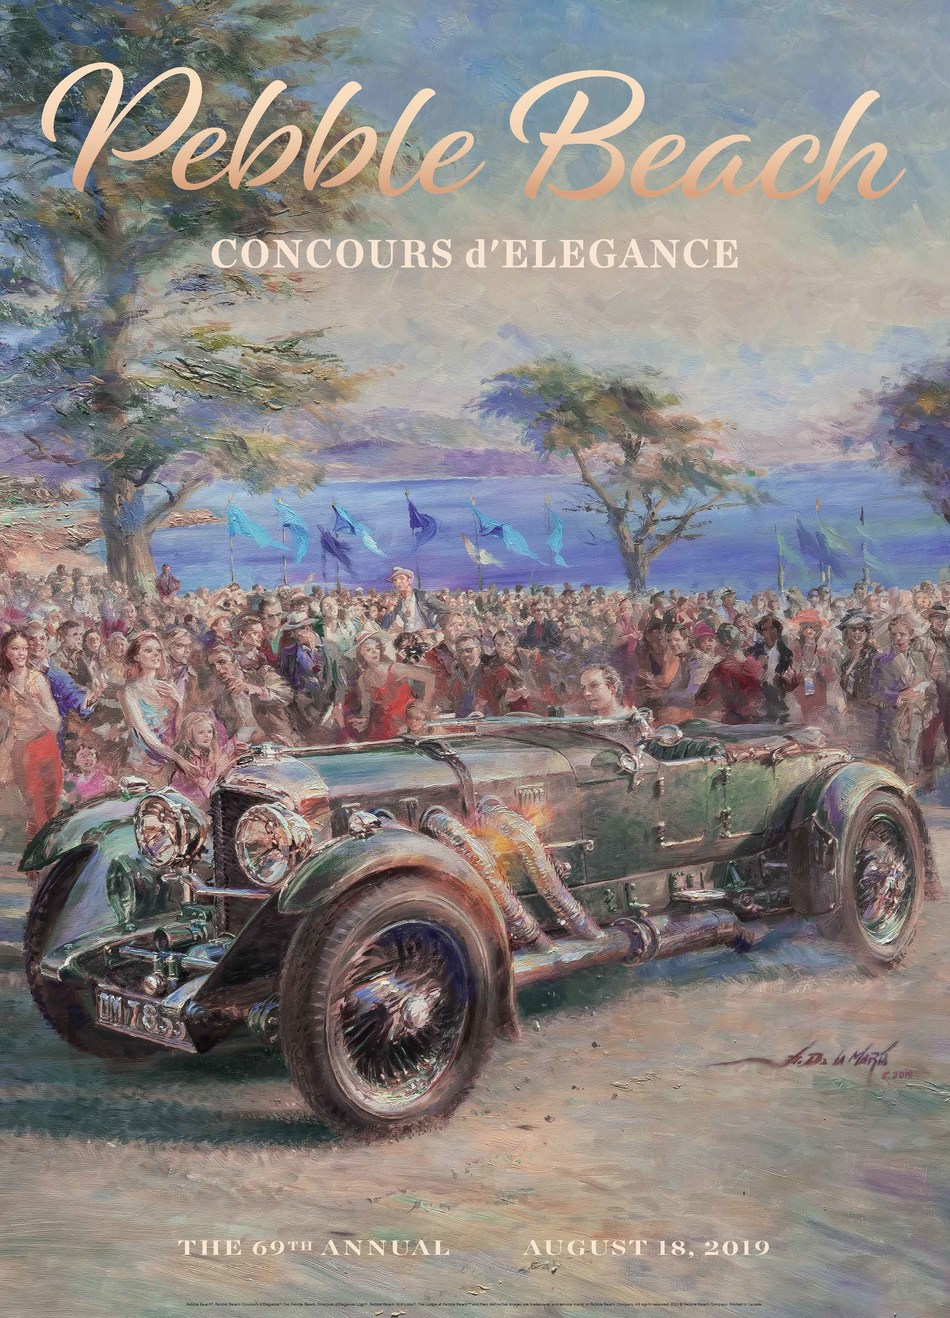 The 2019 Pebble Beach Concours d'Elegance poster, painted by renowned impressionist Alfredo De la Maria, features what is likely the world's most coveted Bentley 8 Litre. Ordered by pioneering Welsh aviator and Brooklands racer Captain Vivian Hewitt, it was the ultimate sporting machine, pairing a short chassis with a lightweight body, massive power (witness the enormous side exhaust) and large Le Mans–style fuel tank and gauges. Now owned by Daniel Sielecki, it remains an unrestored original.